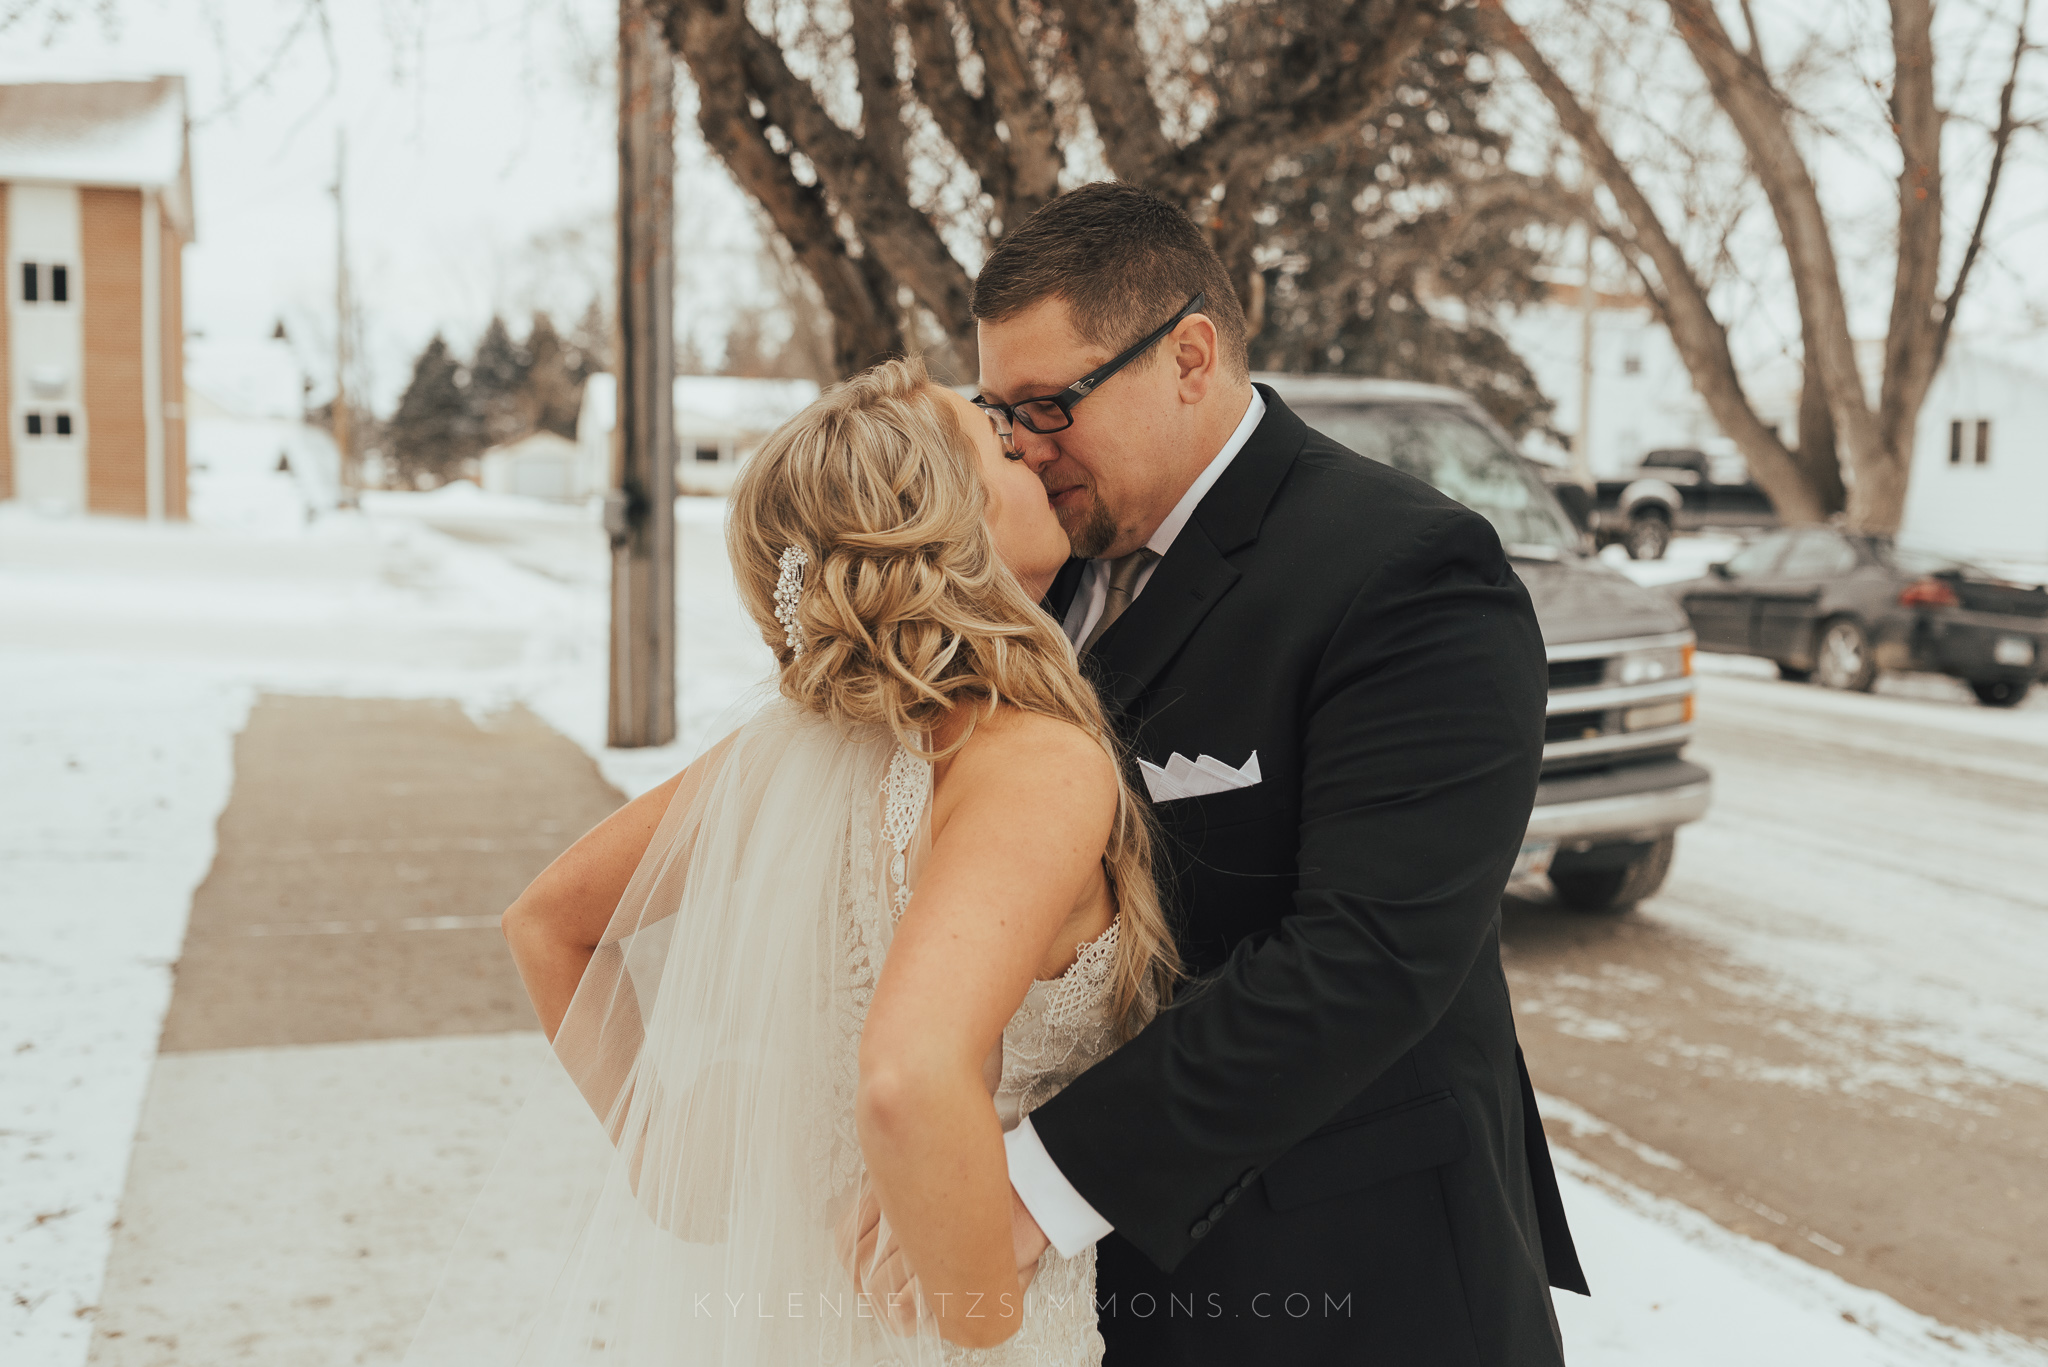 giannonatti-minnesota-winter-wedding-20.jpg